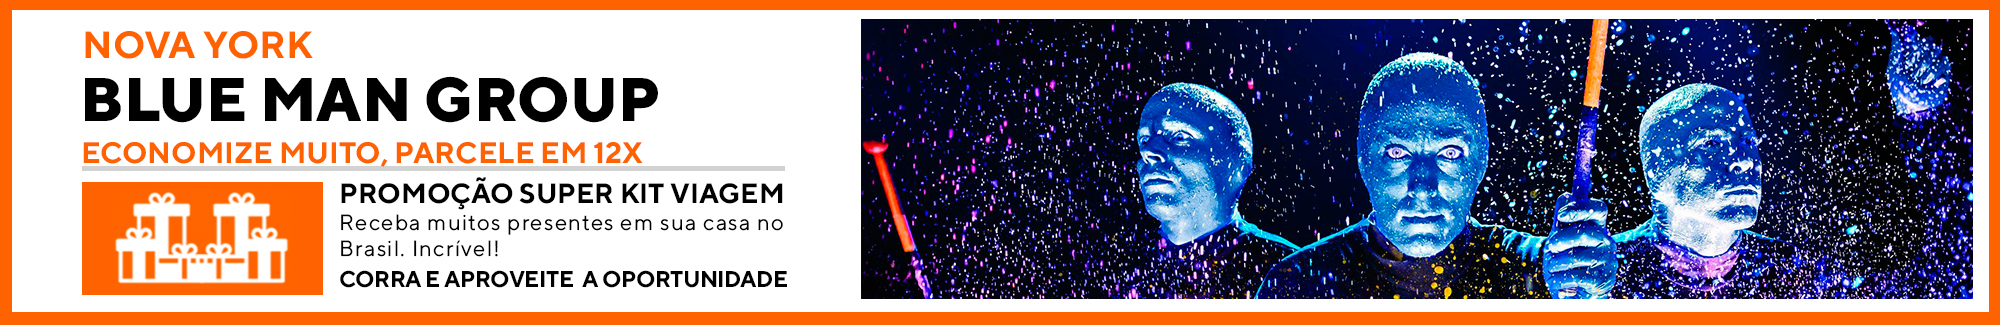 blue man nova york